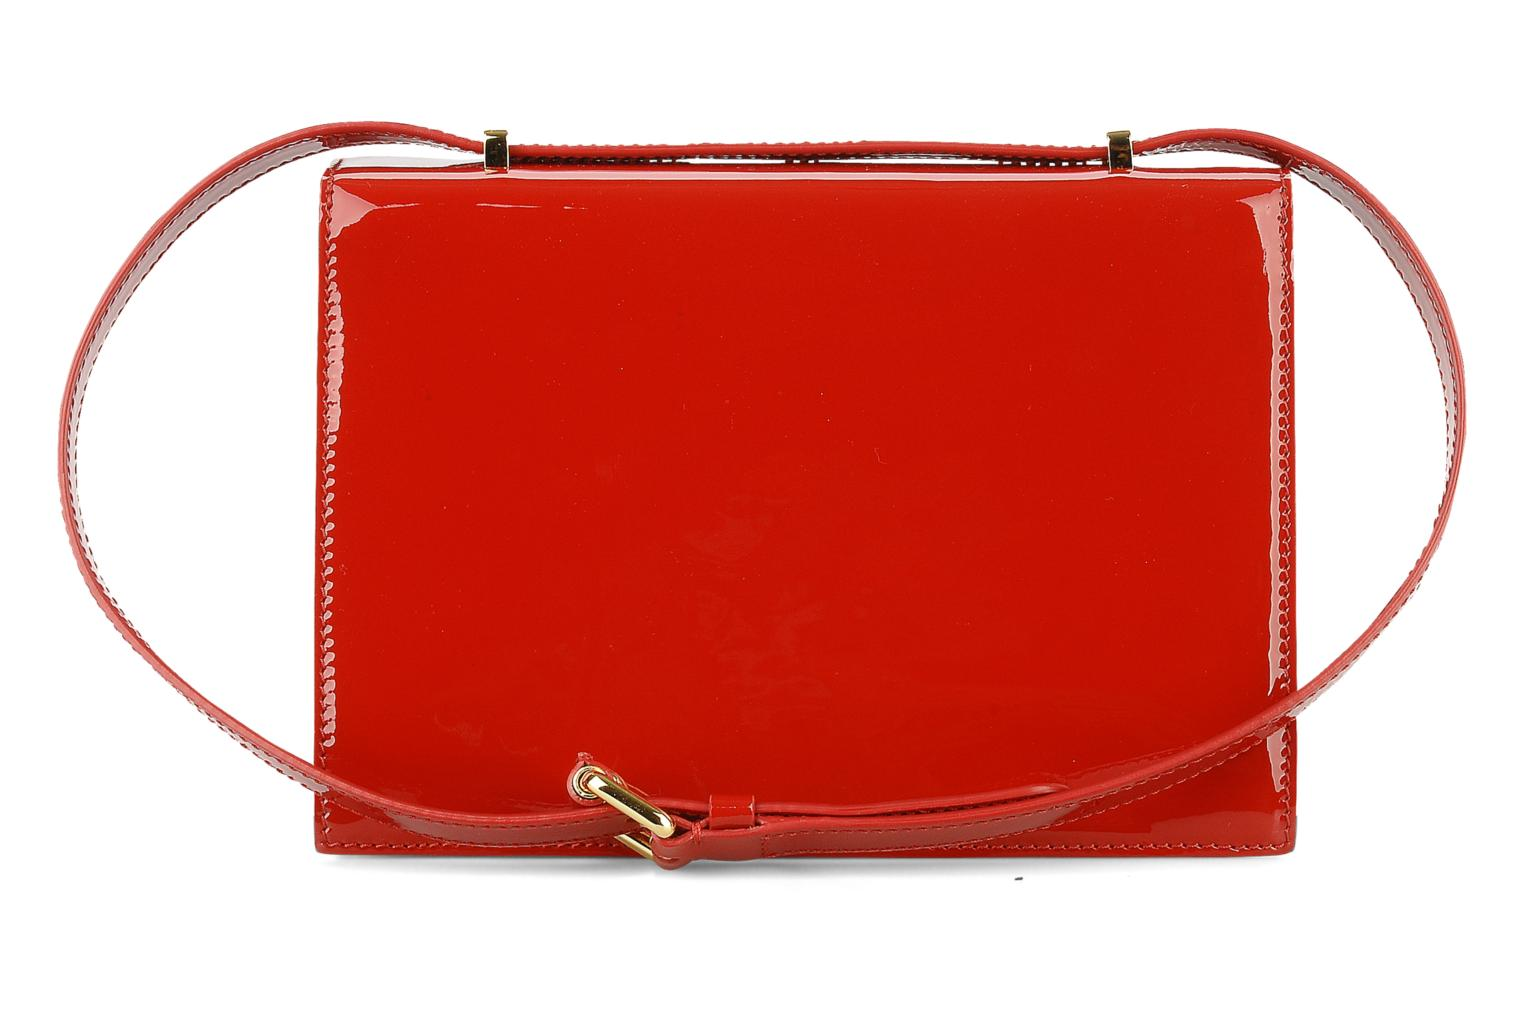 Handbags Moschino Cheap & Chic Spic Red front view